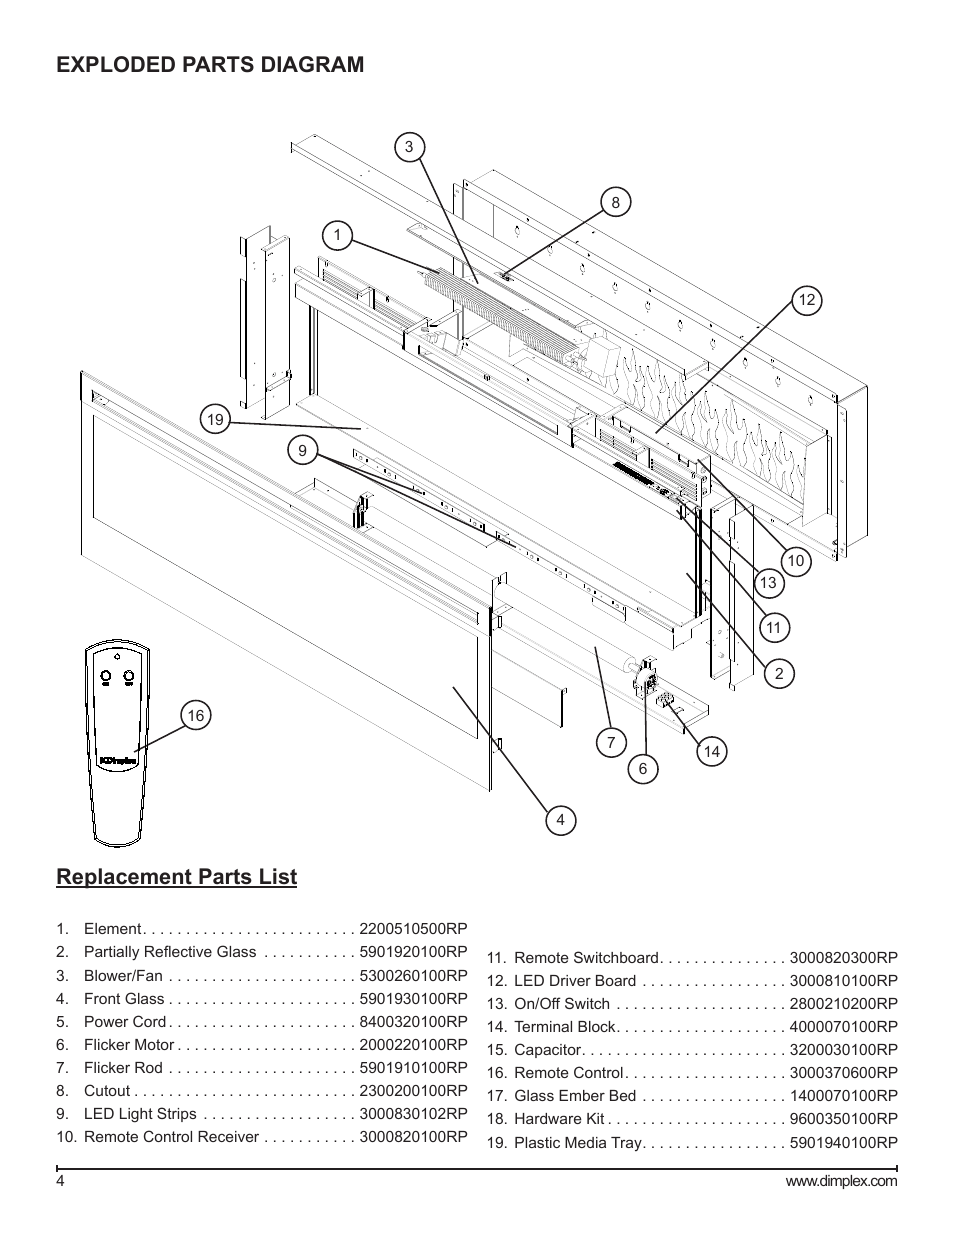 Exploded parts diagram, Exploded parts diagram replacement